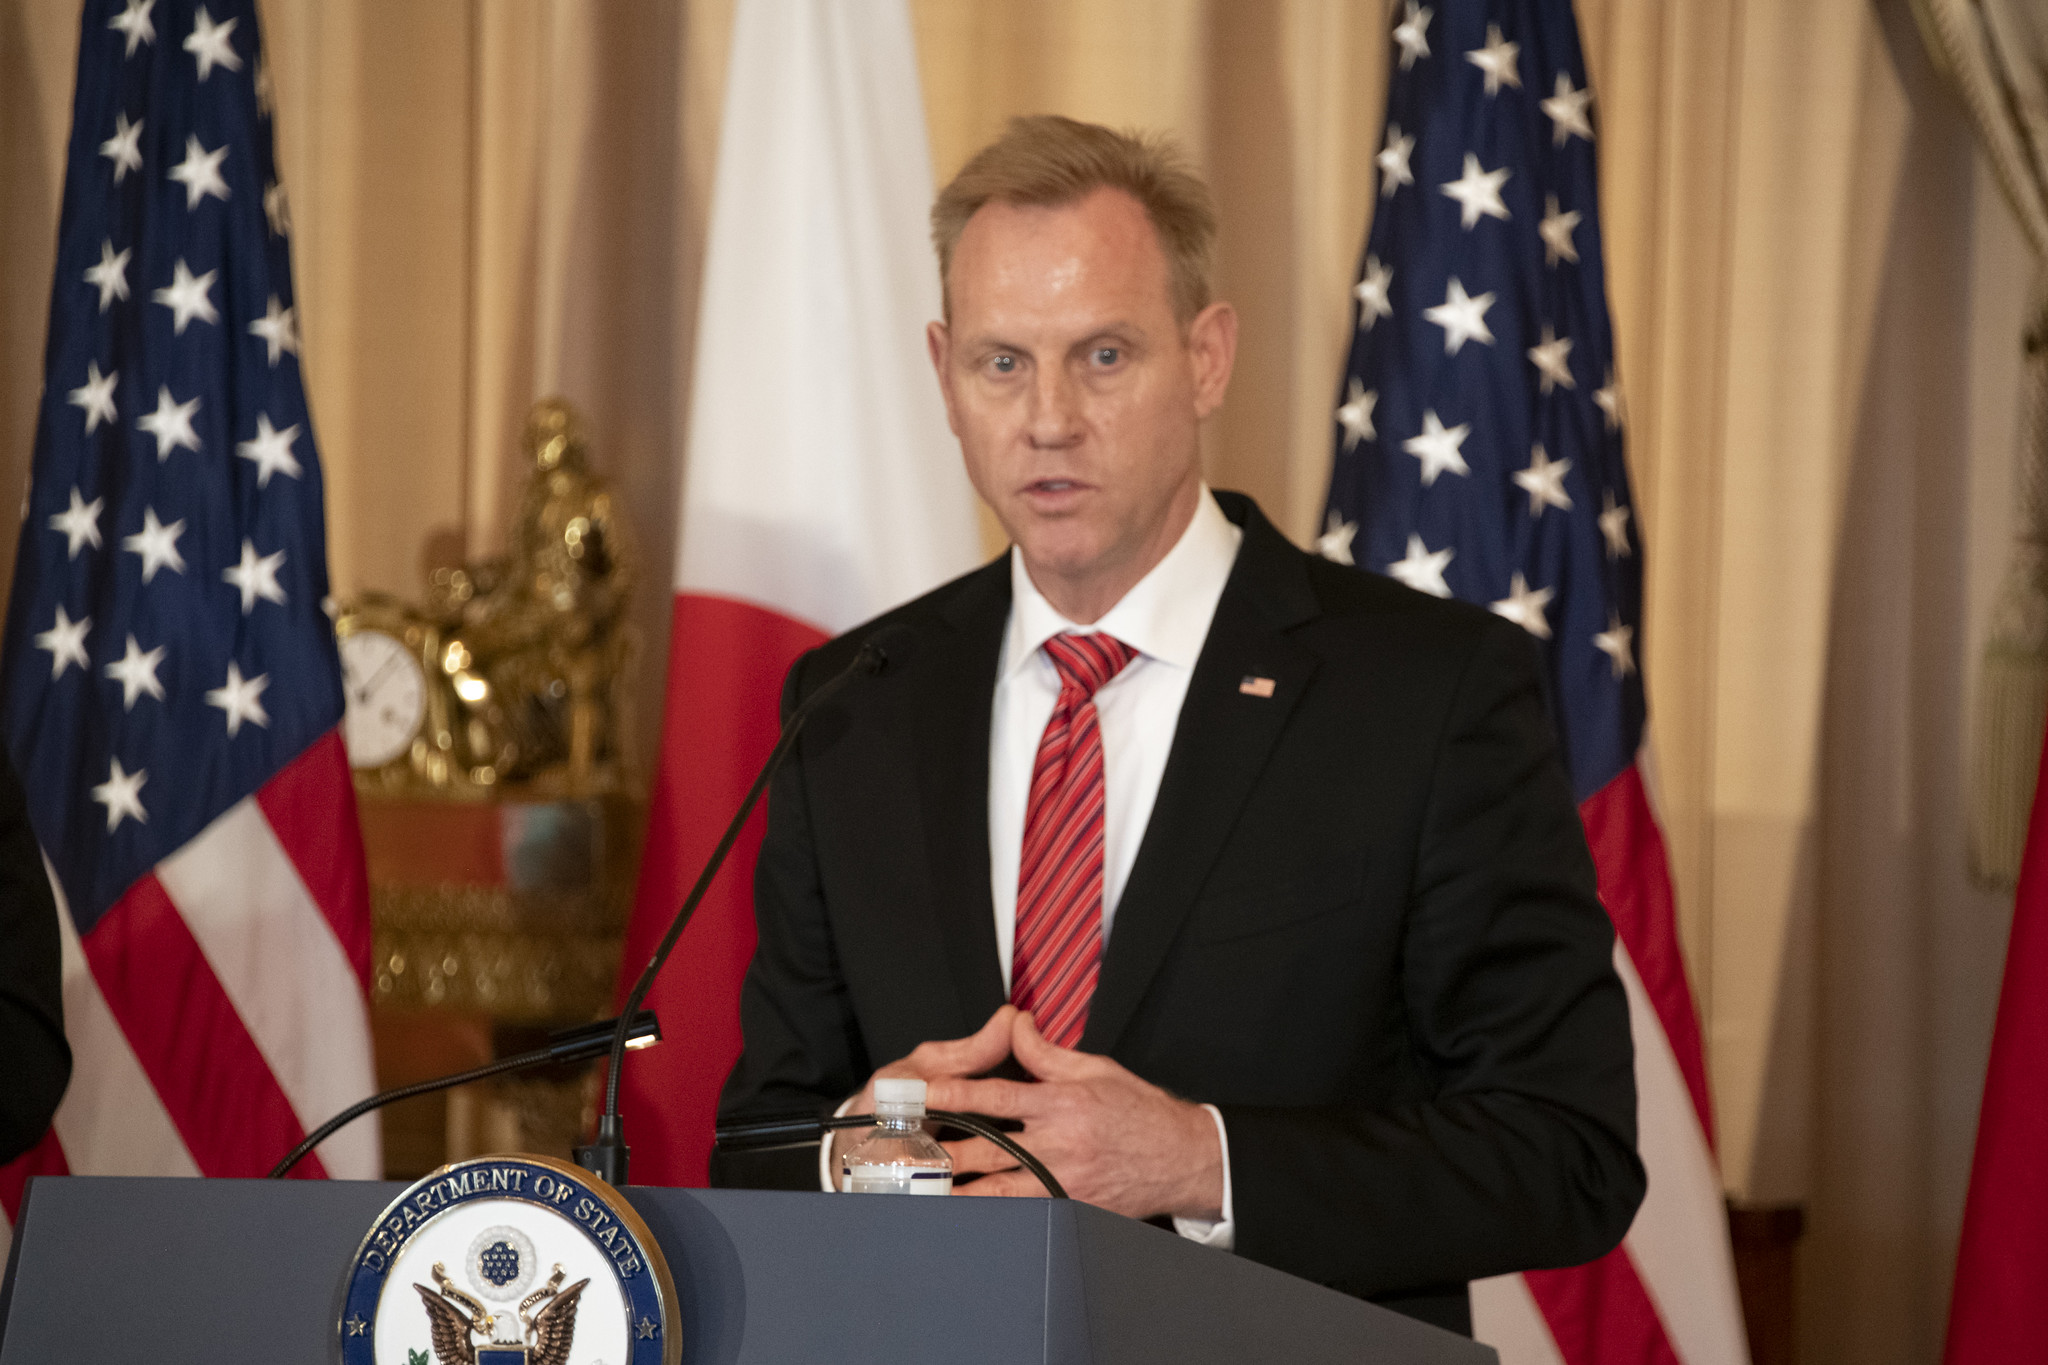 """Acting Secretary of Defense Patrick Shanahan participates in a joint press availability following the Security Consultative Committee (""""2+2"""") meeting at the U.S. Department of State in Washington on April 19, 2019. (Ron Przysucha/State Department)"""